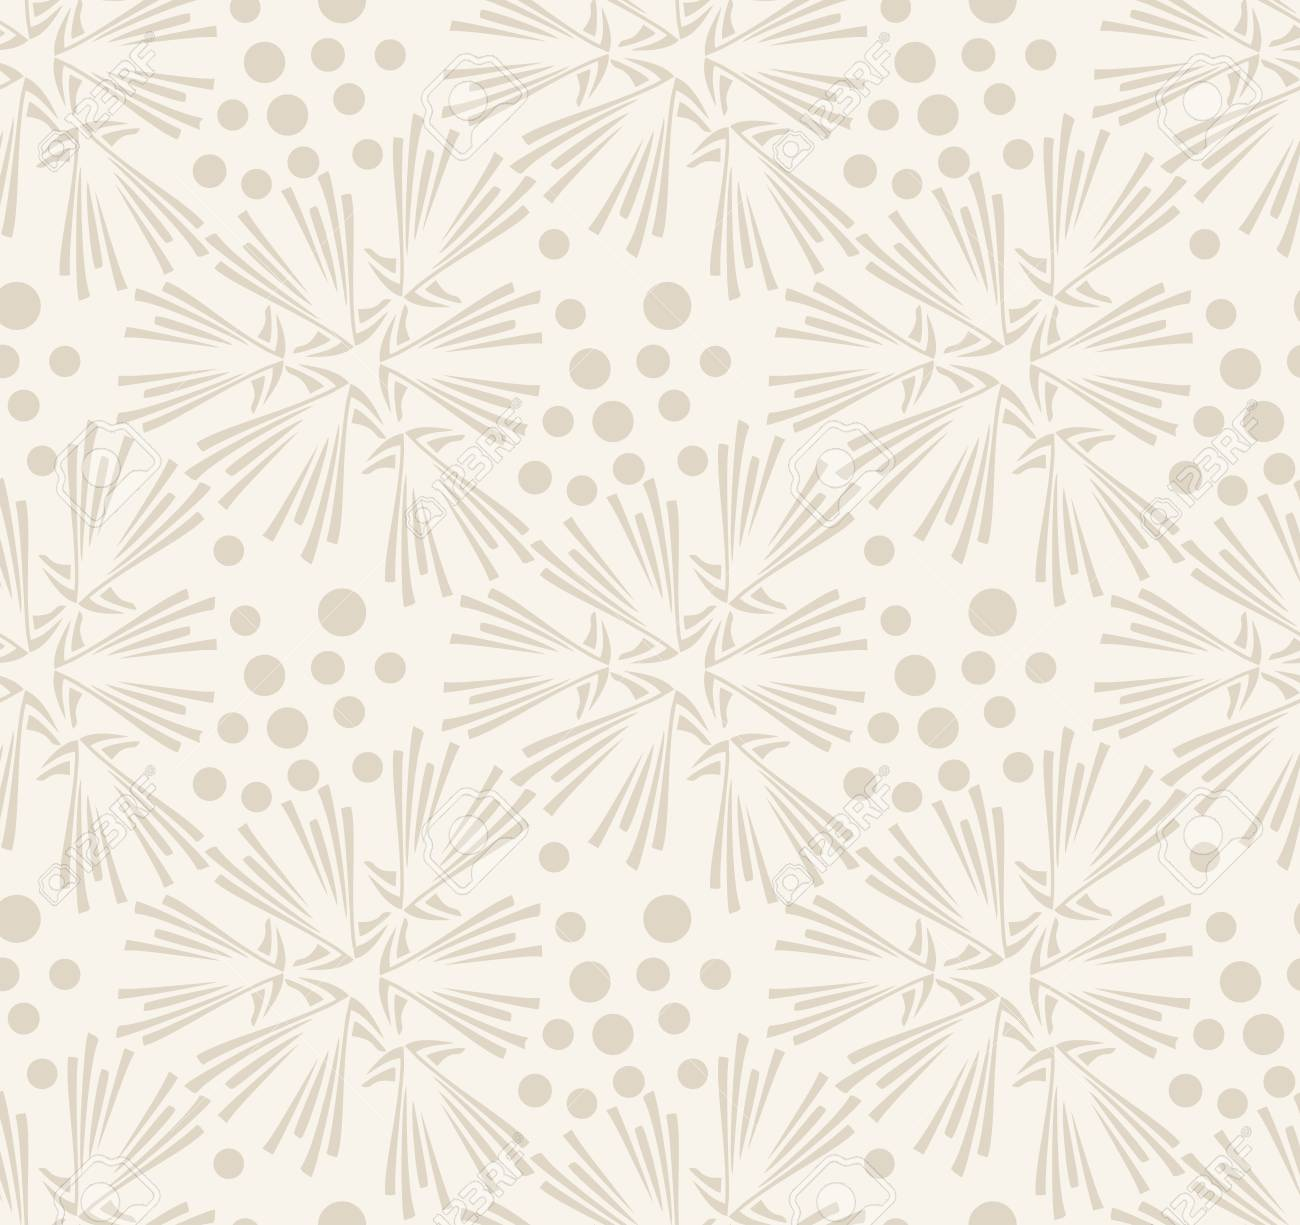 Floral Vintage Rustic Seamless Pattern Background Can Be Used For Wallpaper Fills Web